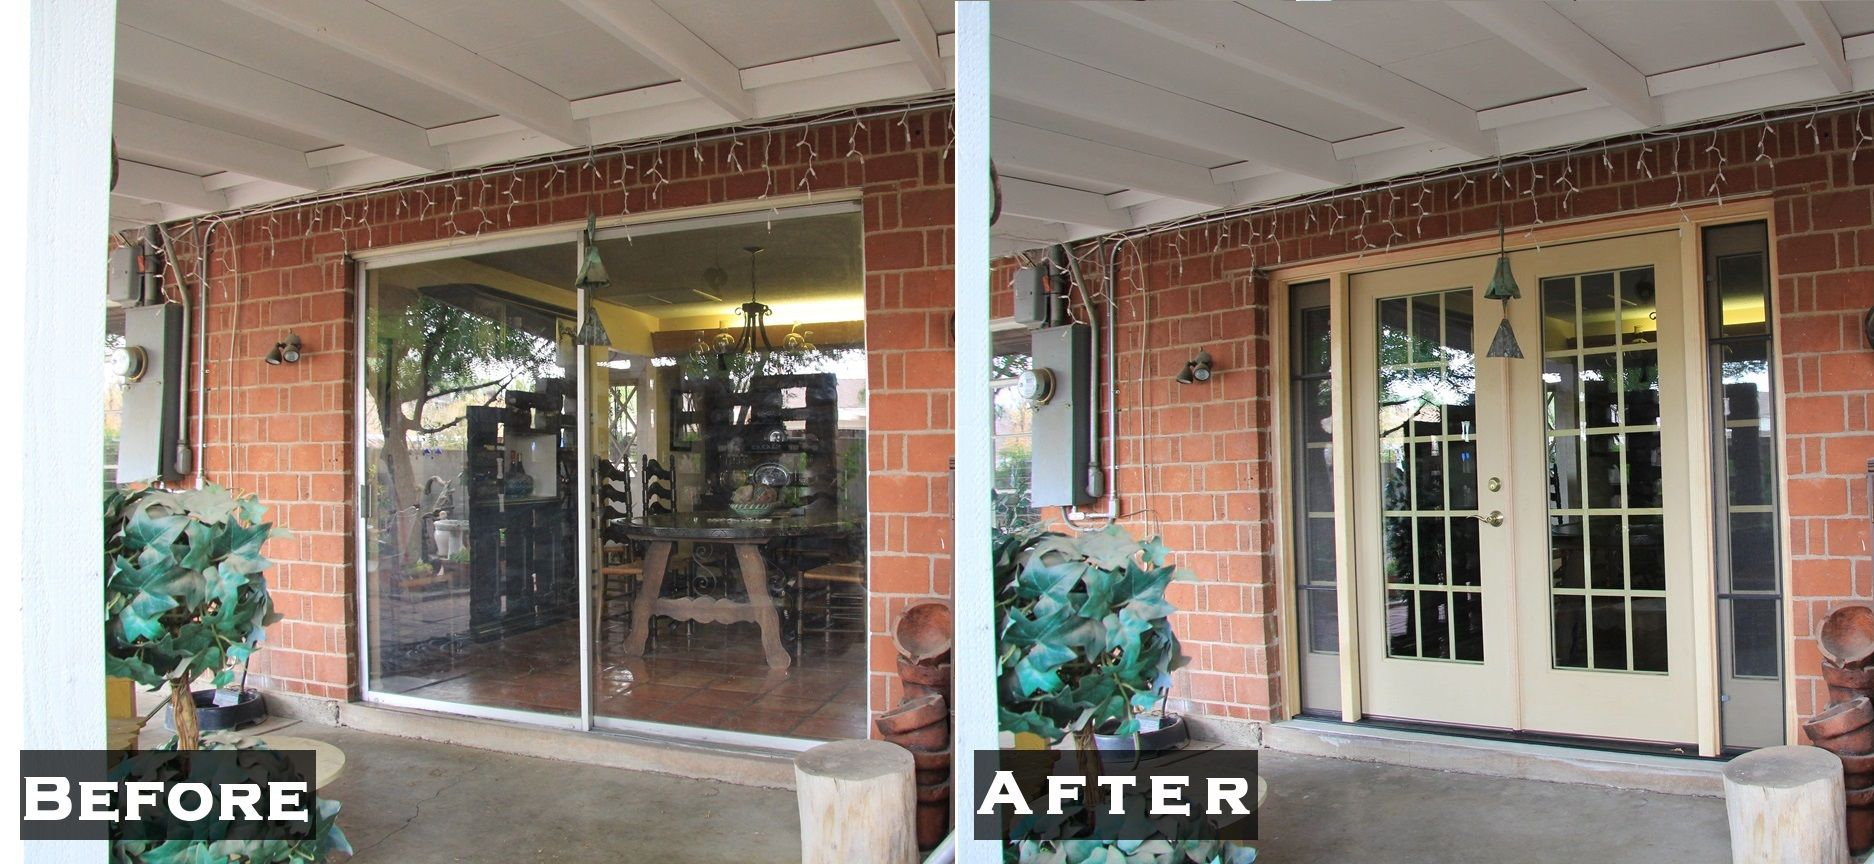 White French Patio Doors On Red Brick Home With Opening And Closing